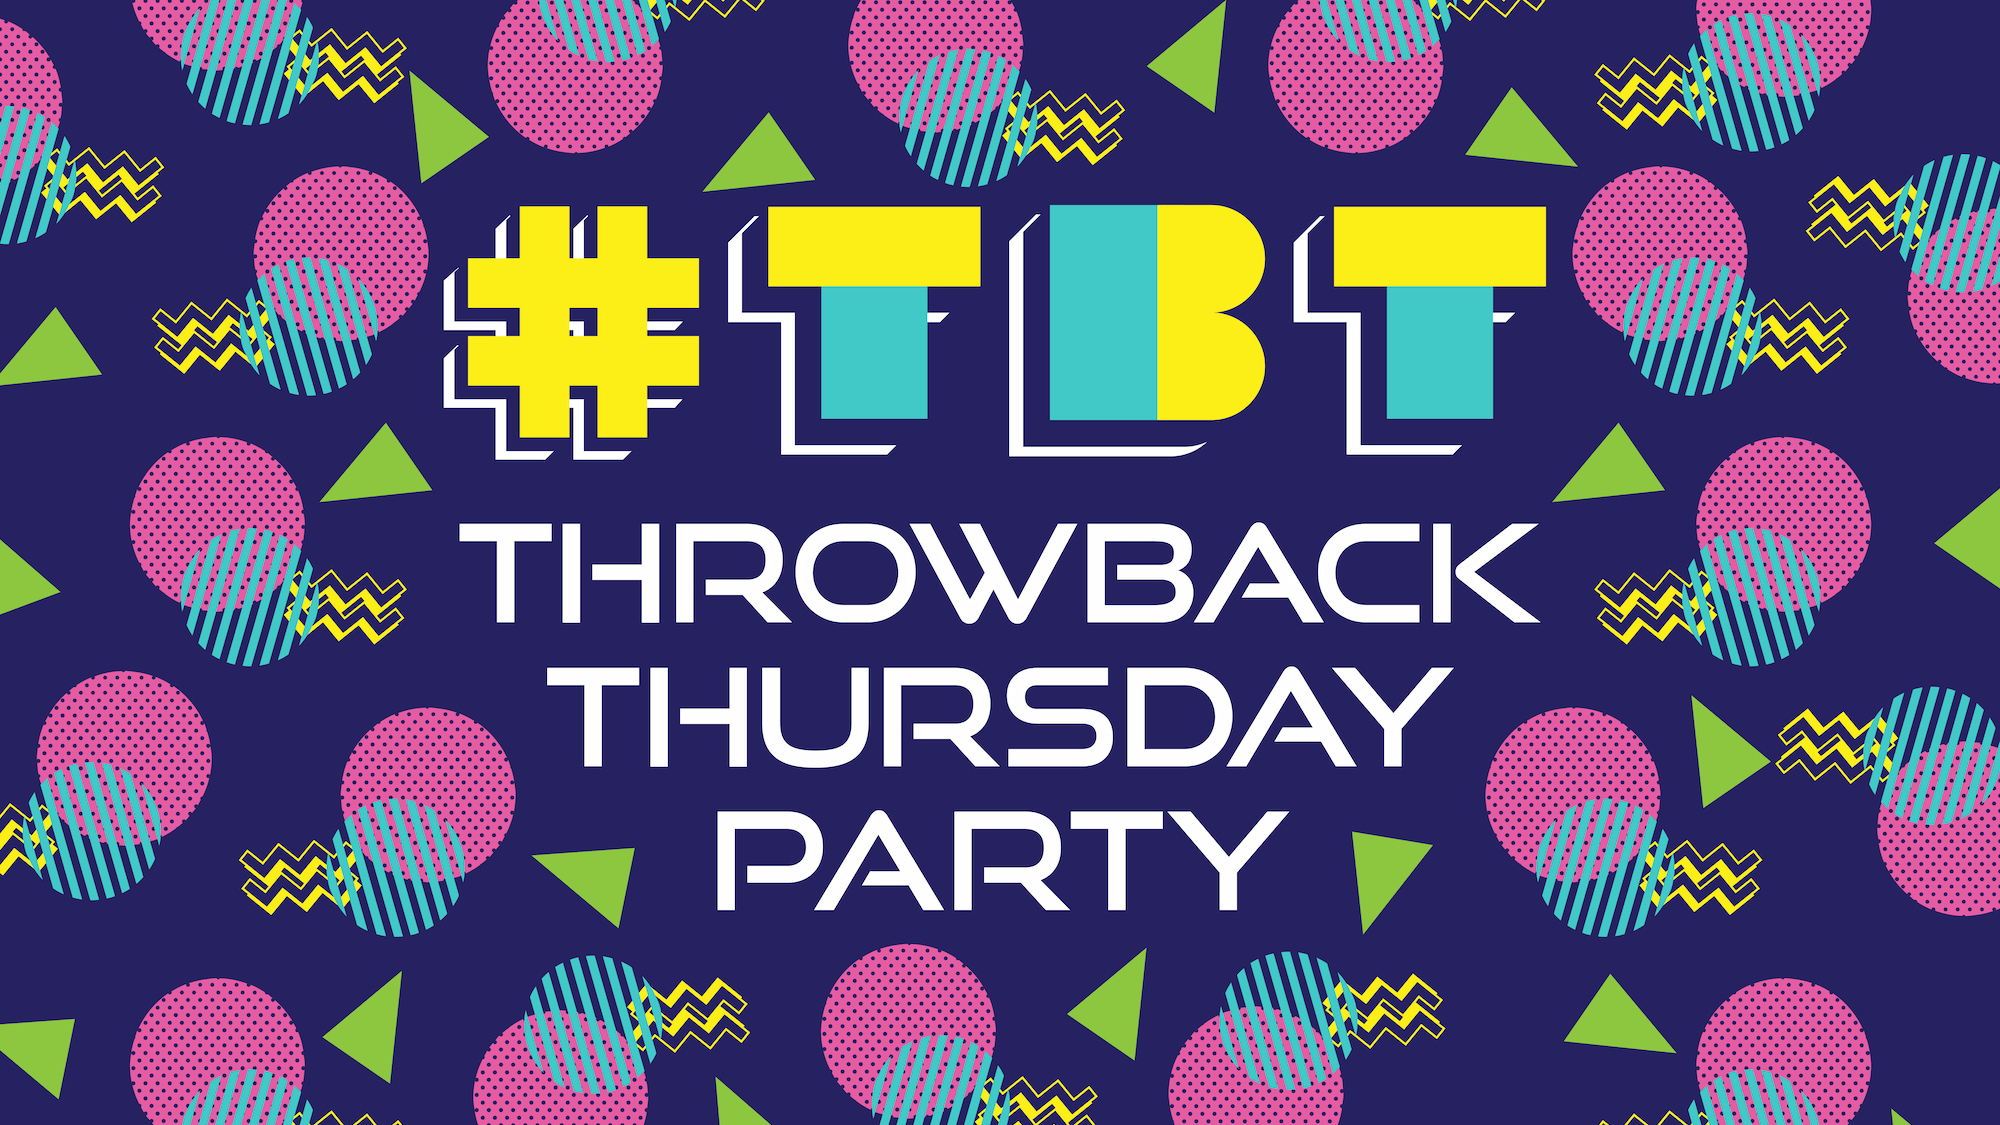 throwback Thursday party